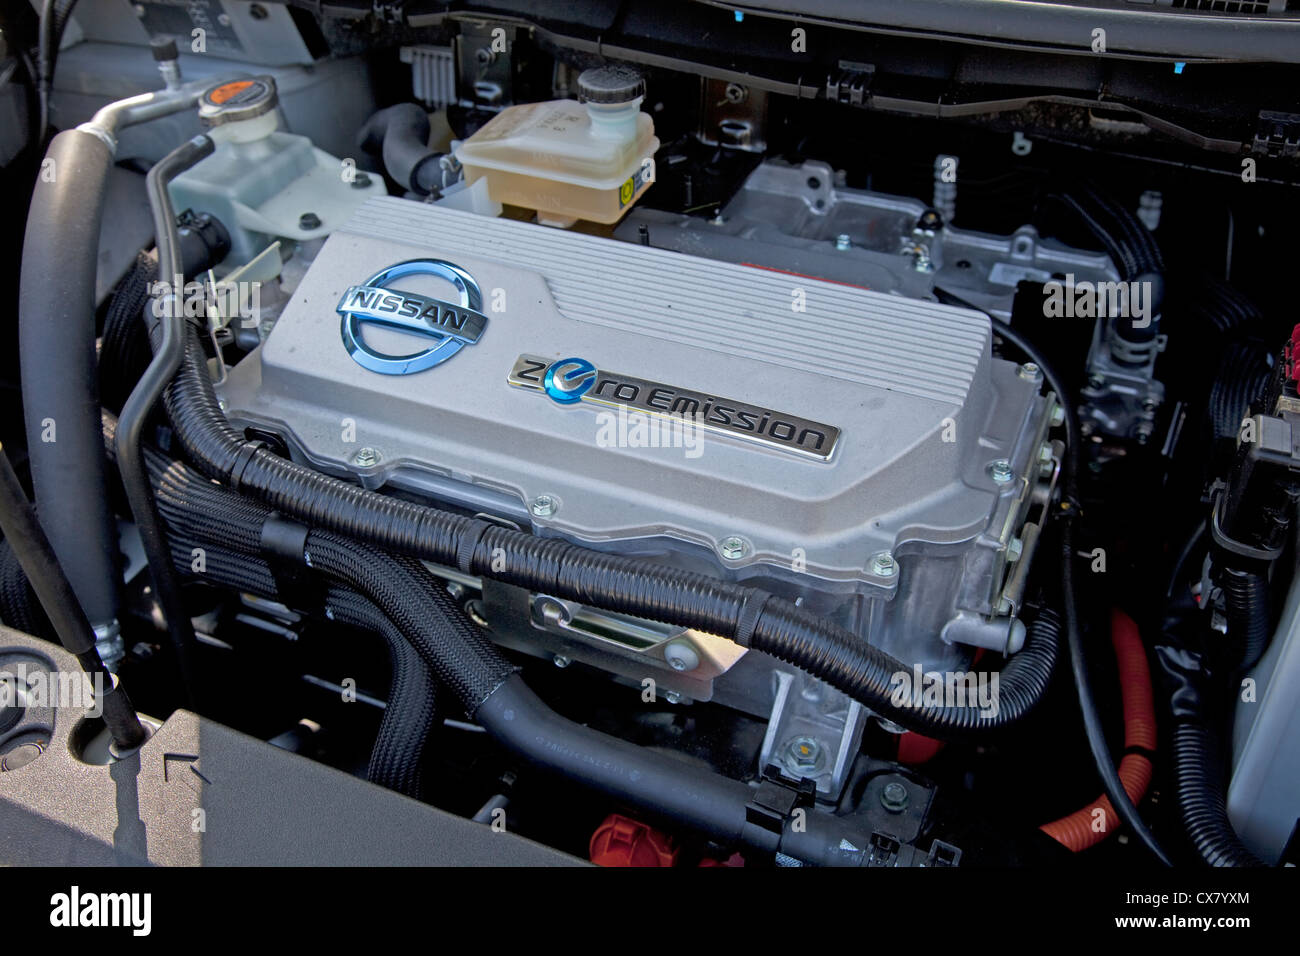 Nissan Leaf Zero Emissions Electric Car Engine Uk Stock Photo